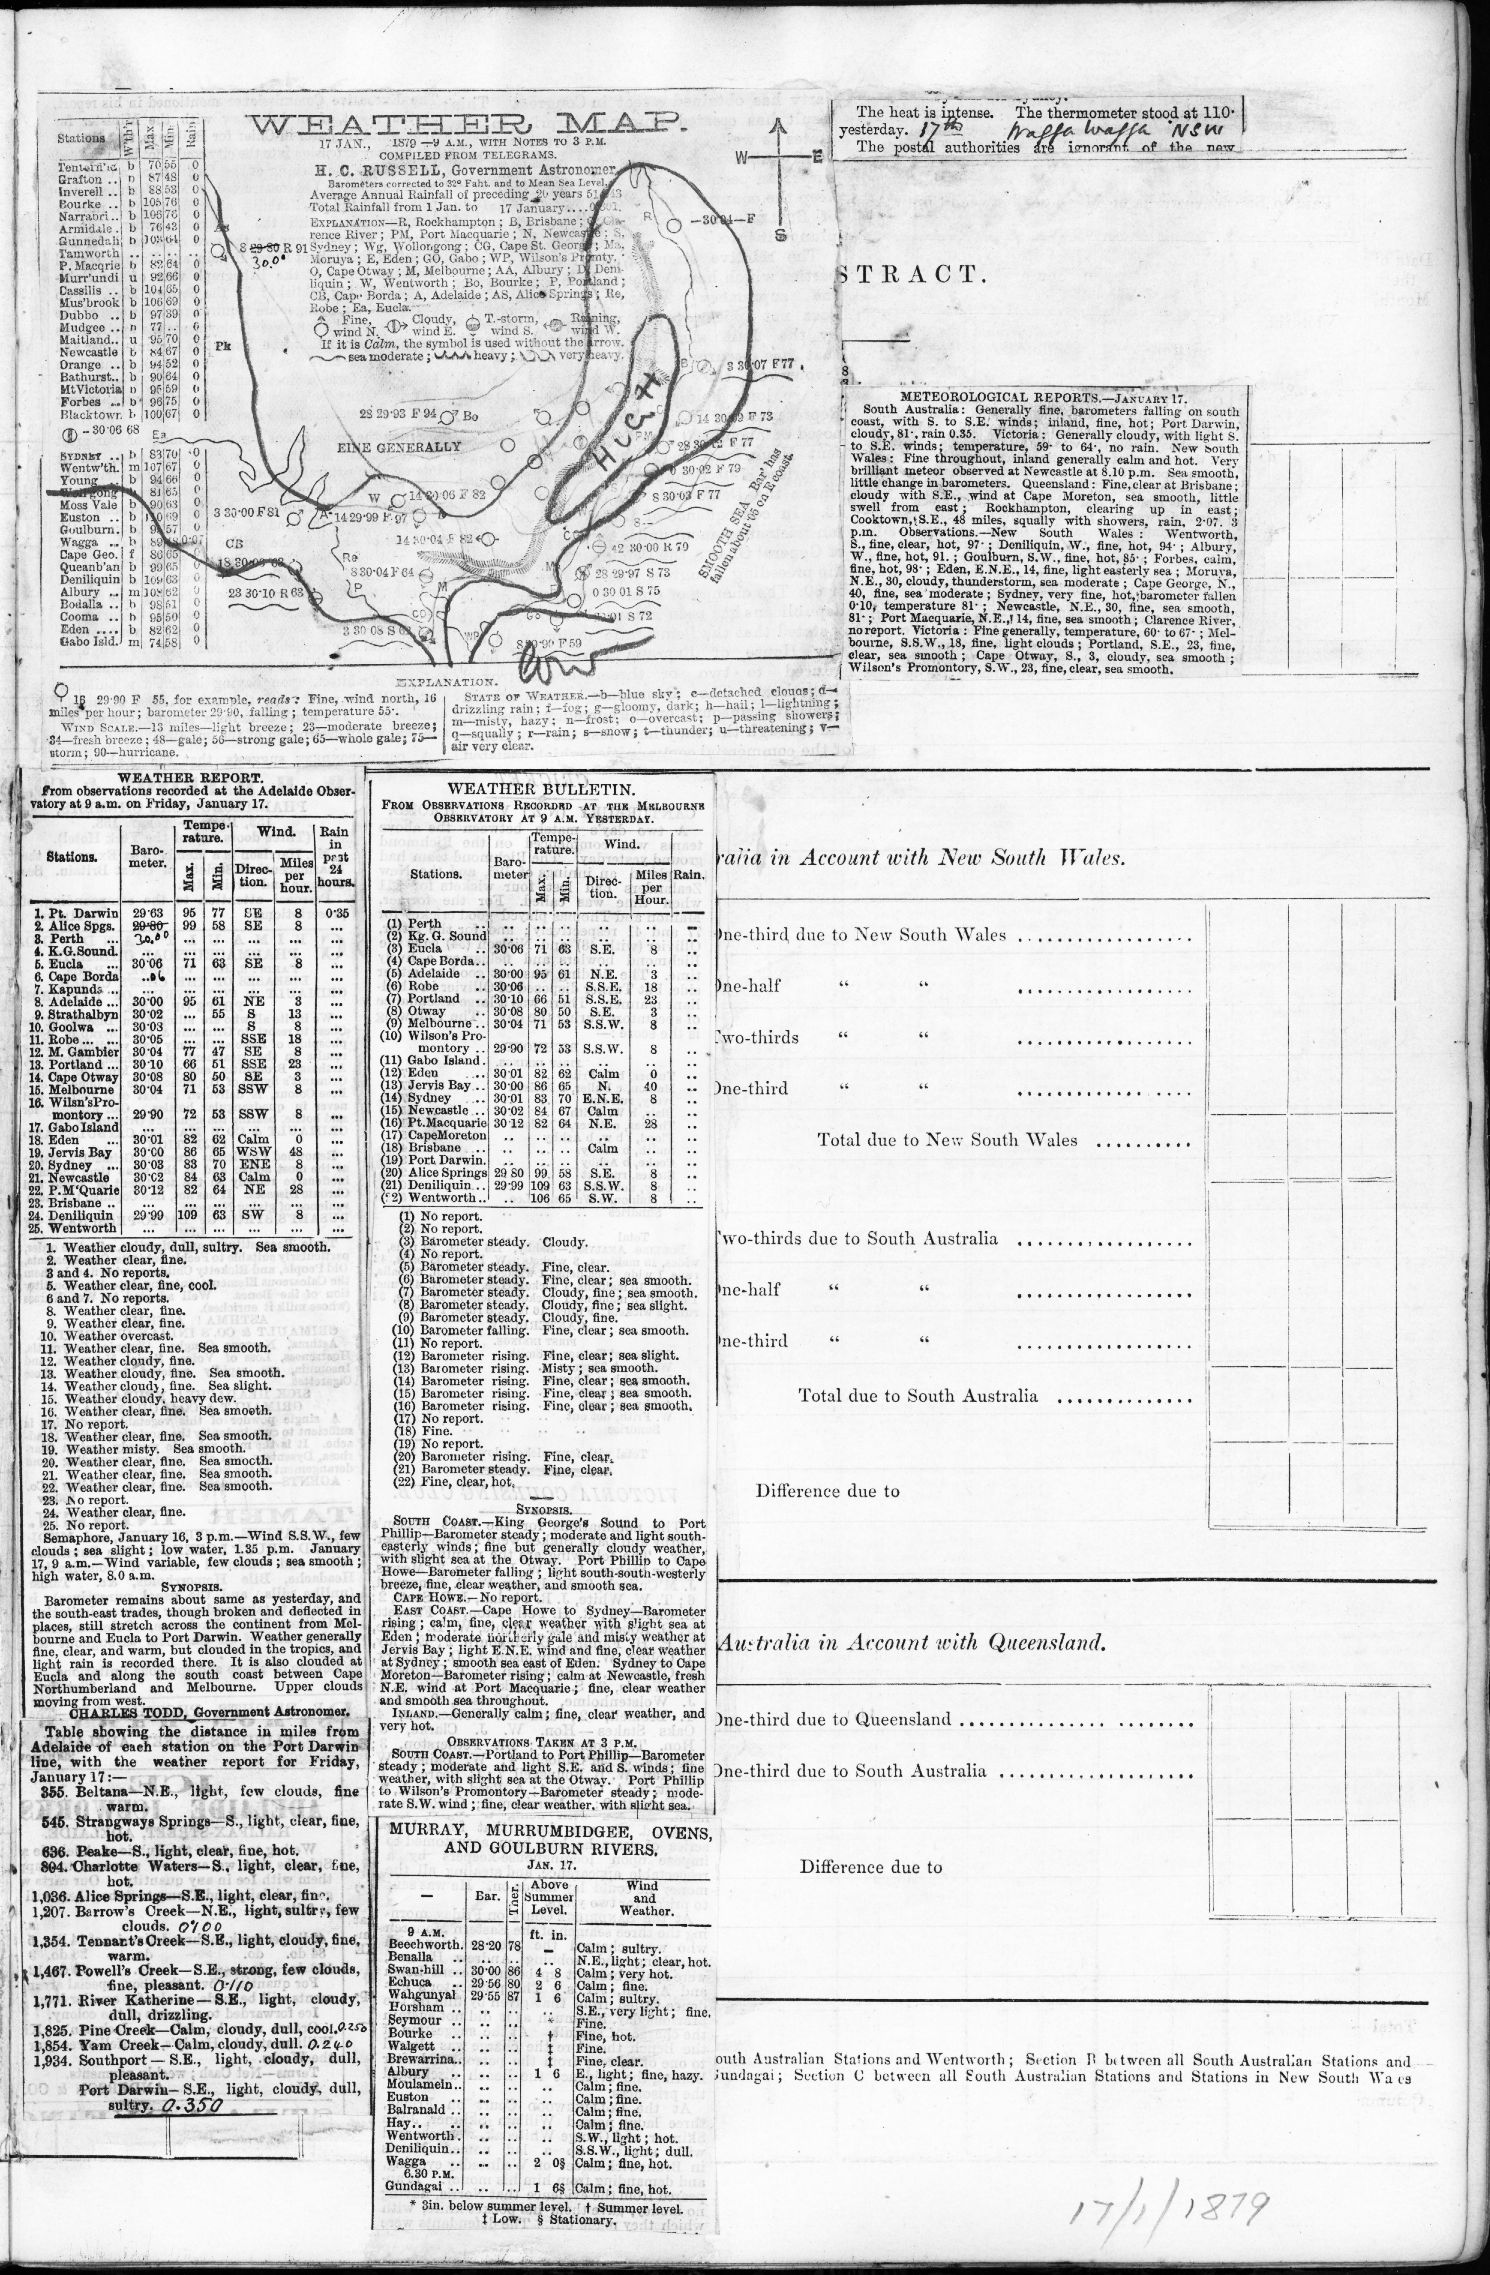 18790117t01 Weather map